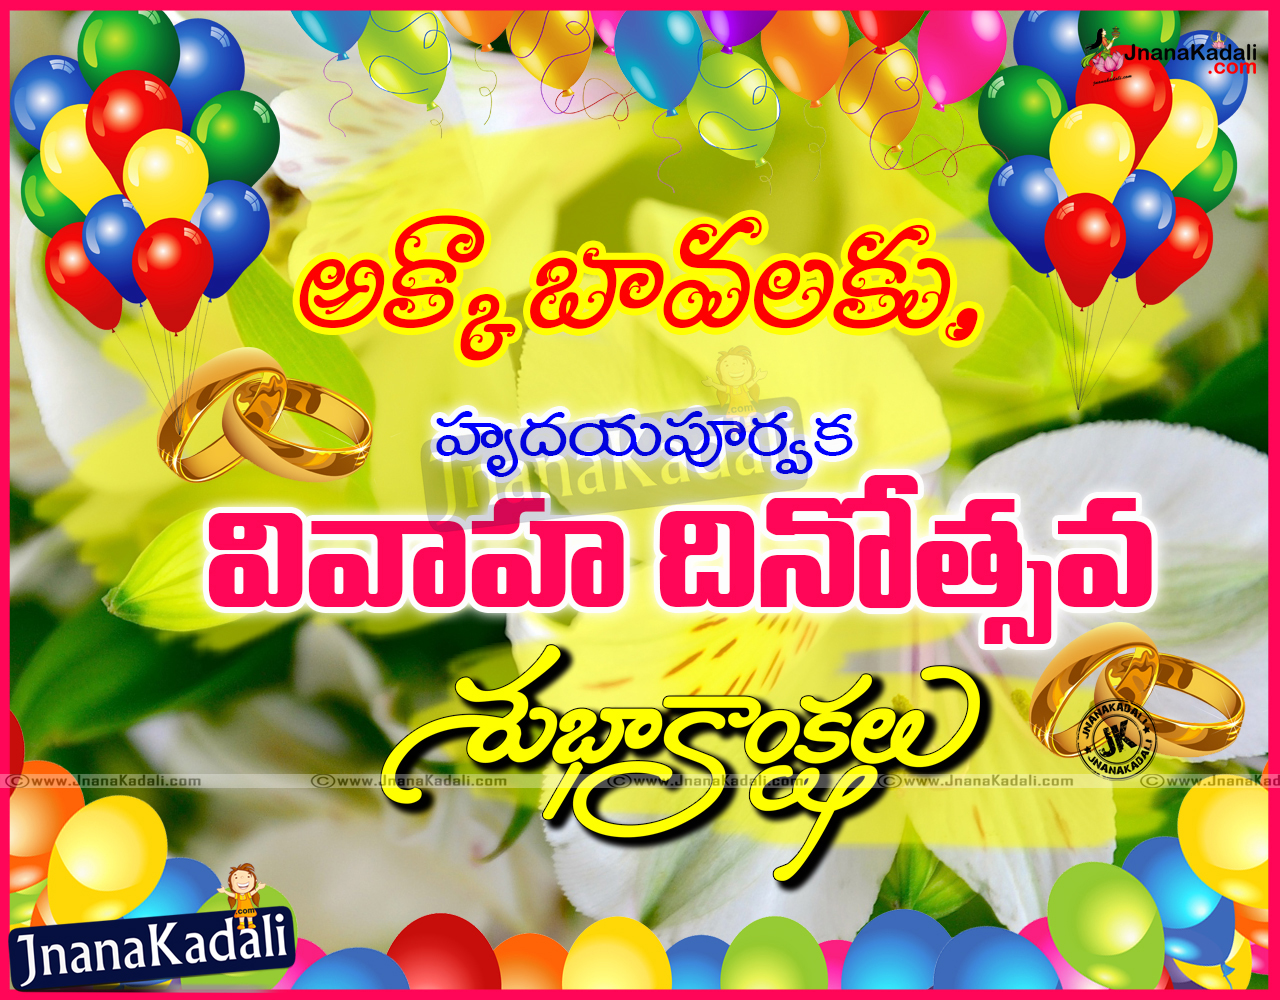 Here Is A Telugu Allah Blessings Quotes And Marriage - Happy Wedding Anniversary Akka Bava - HD Wallpaper